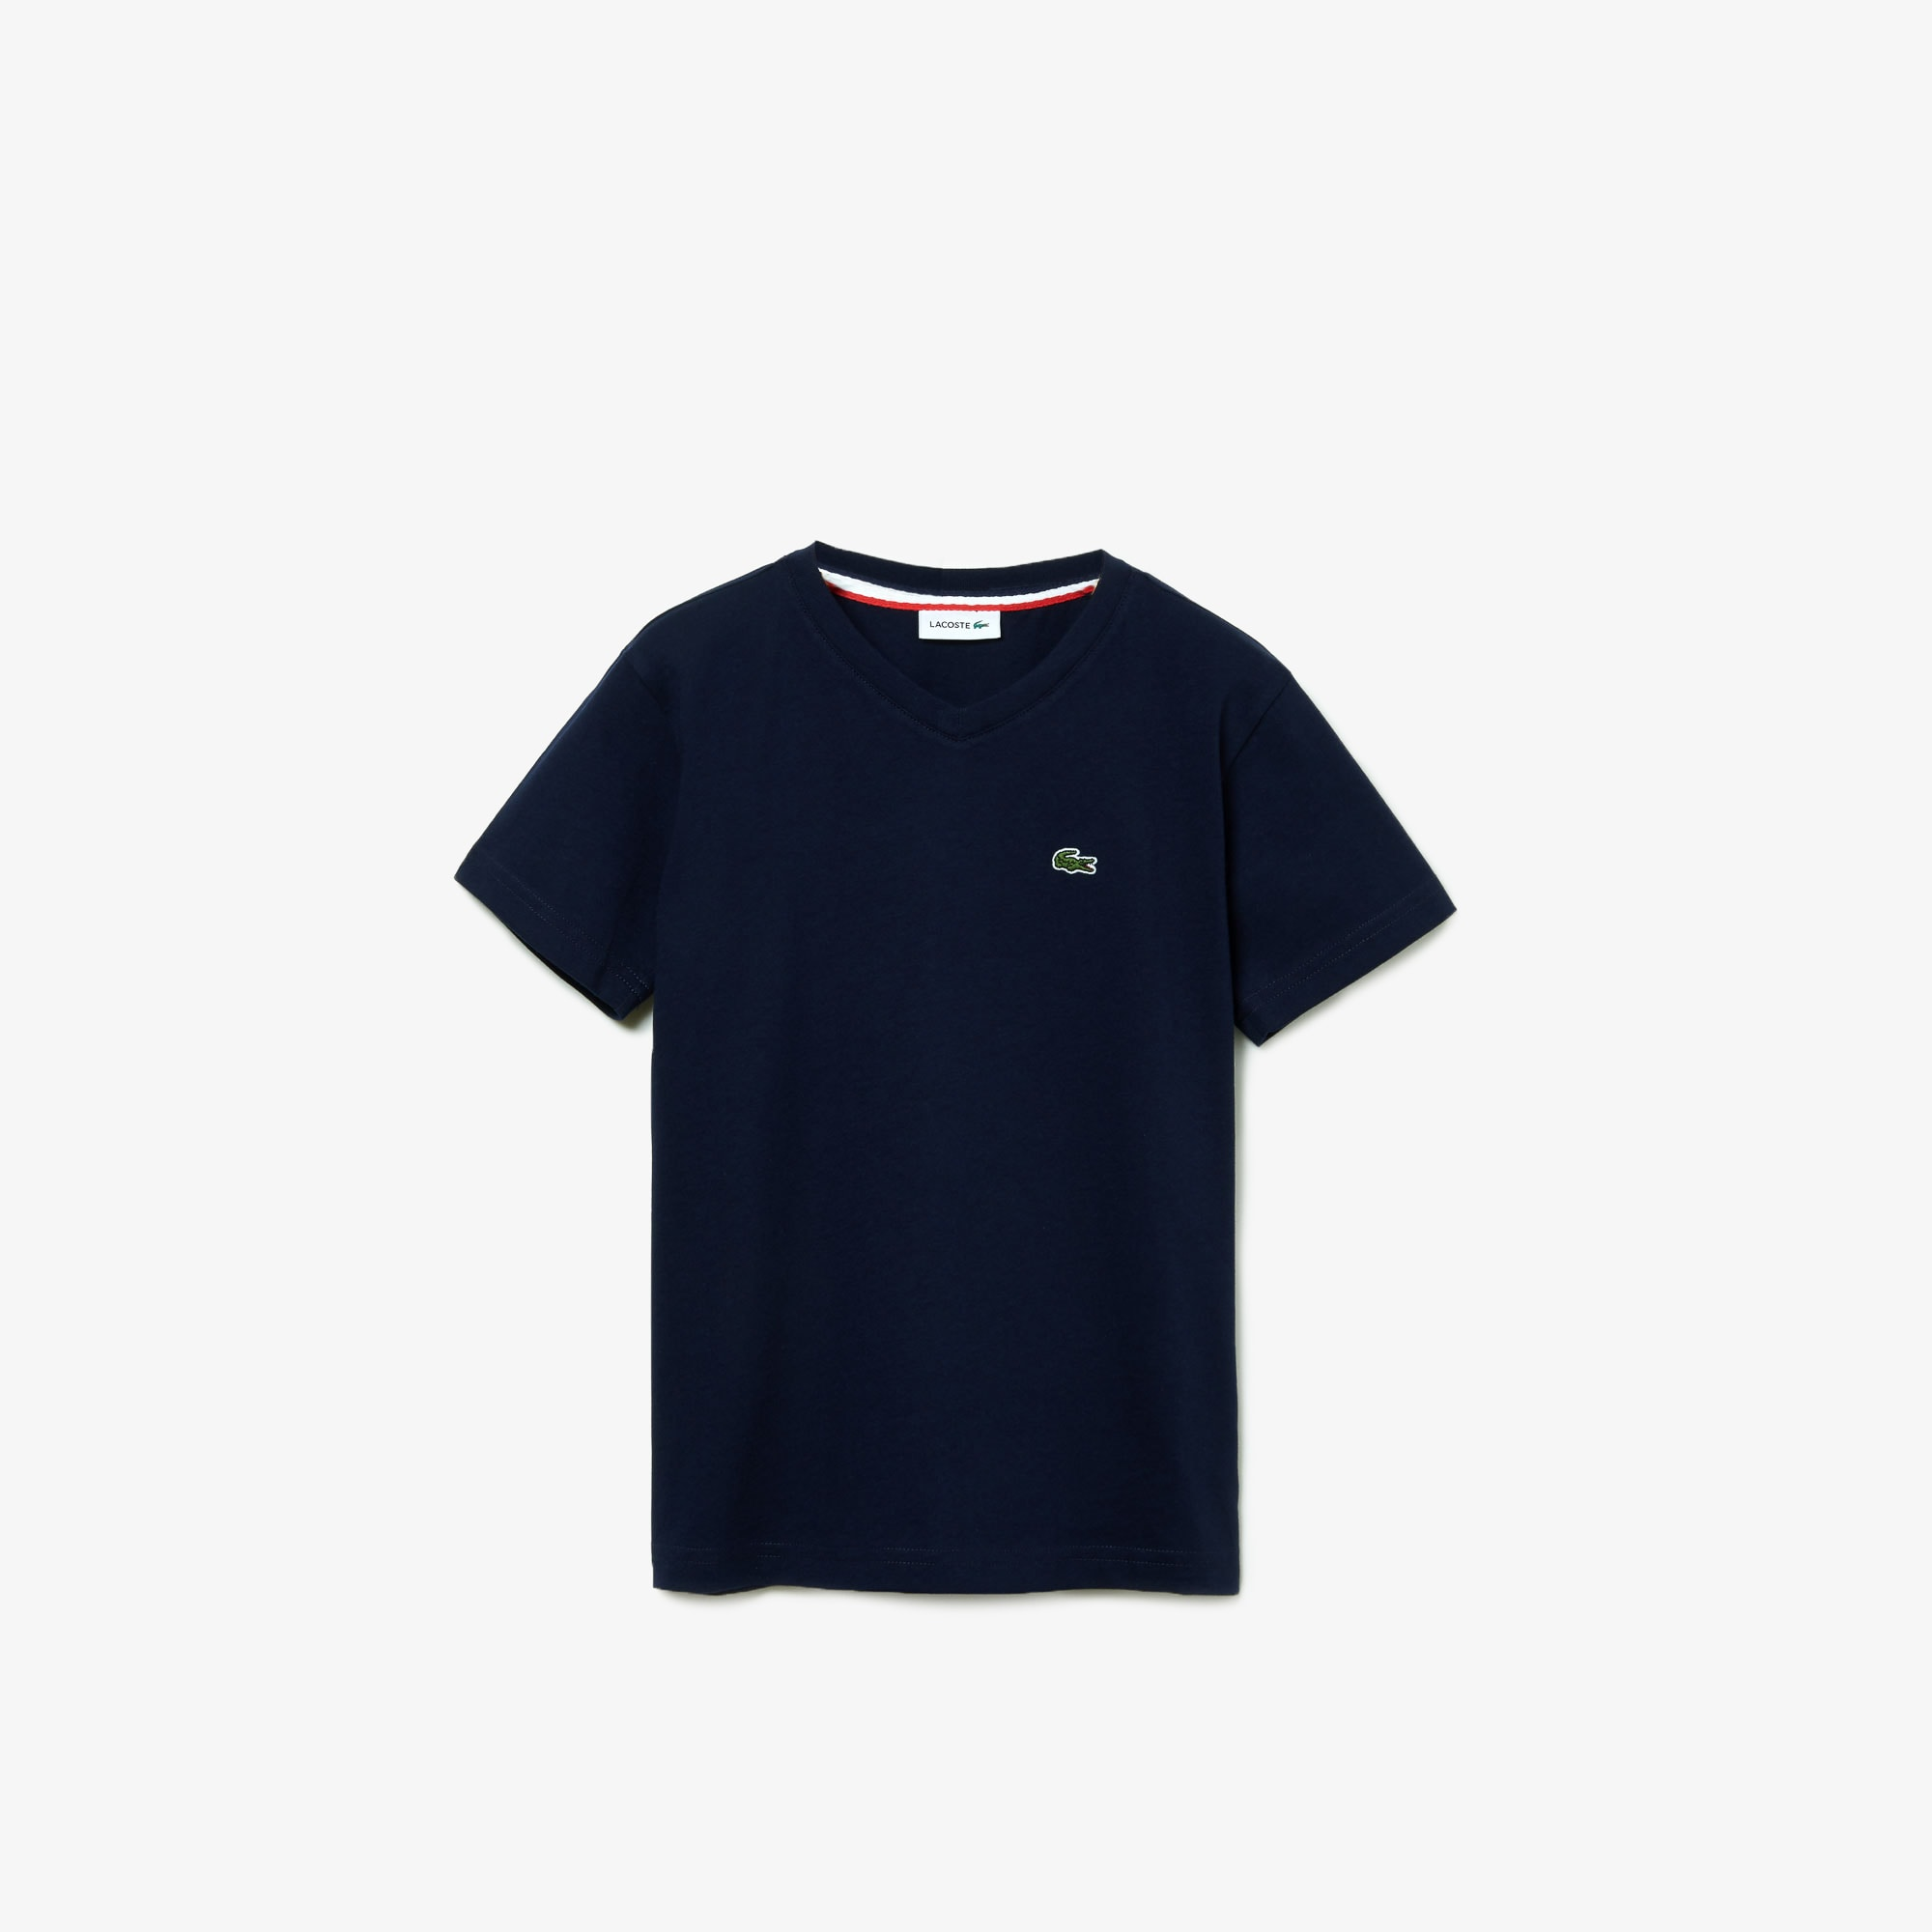 0709794a1e005a Lacoste Kids  Clothing